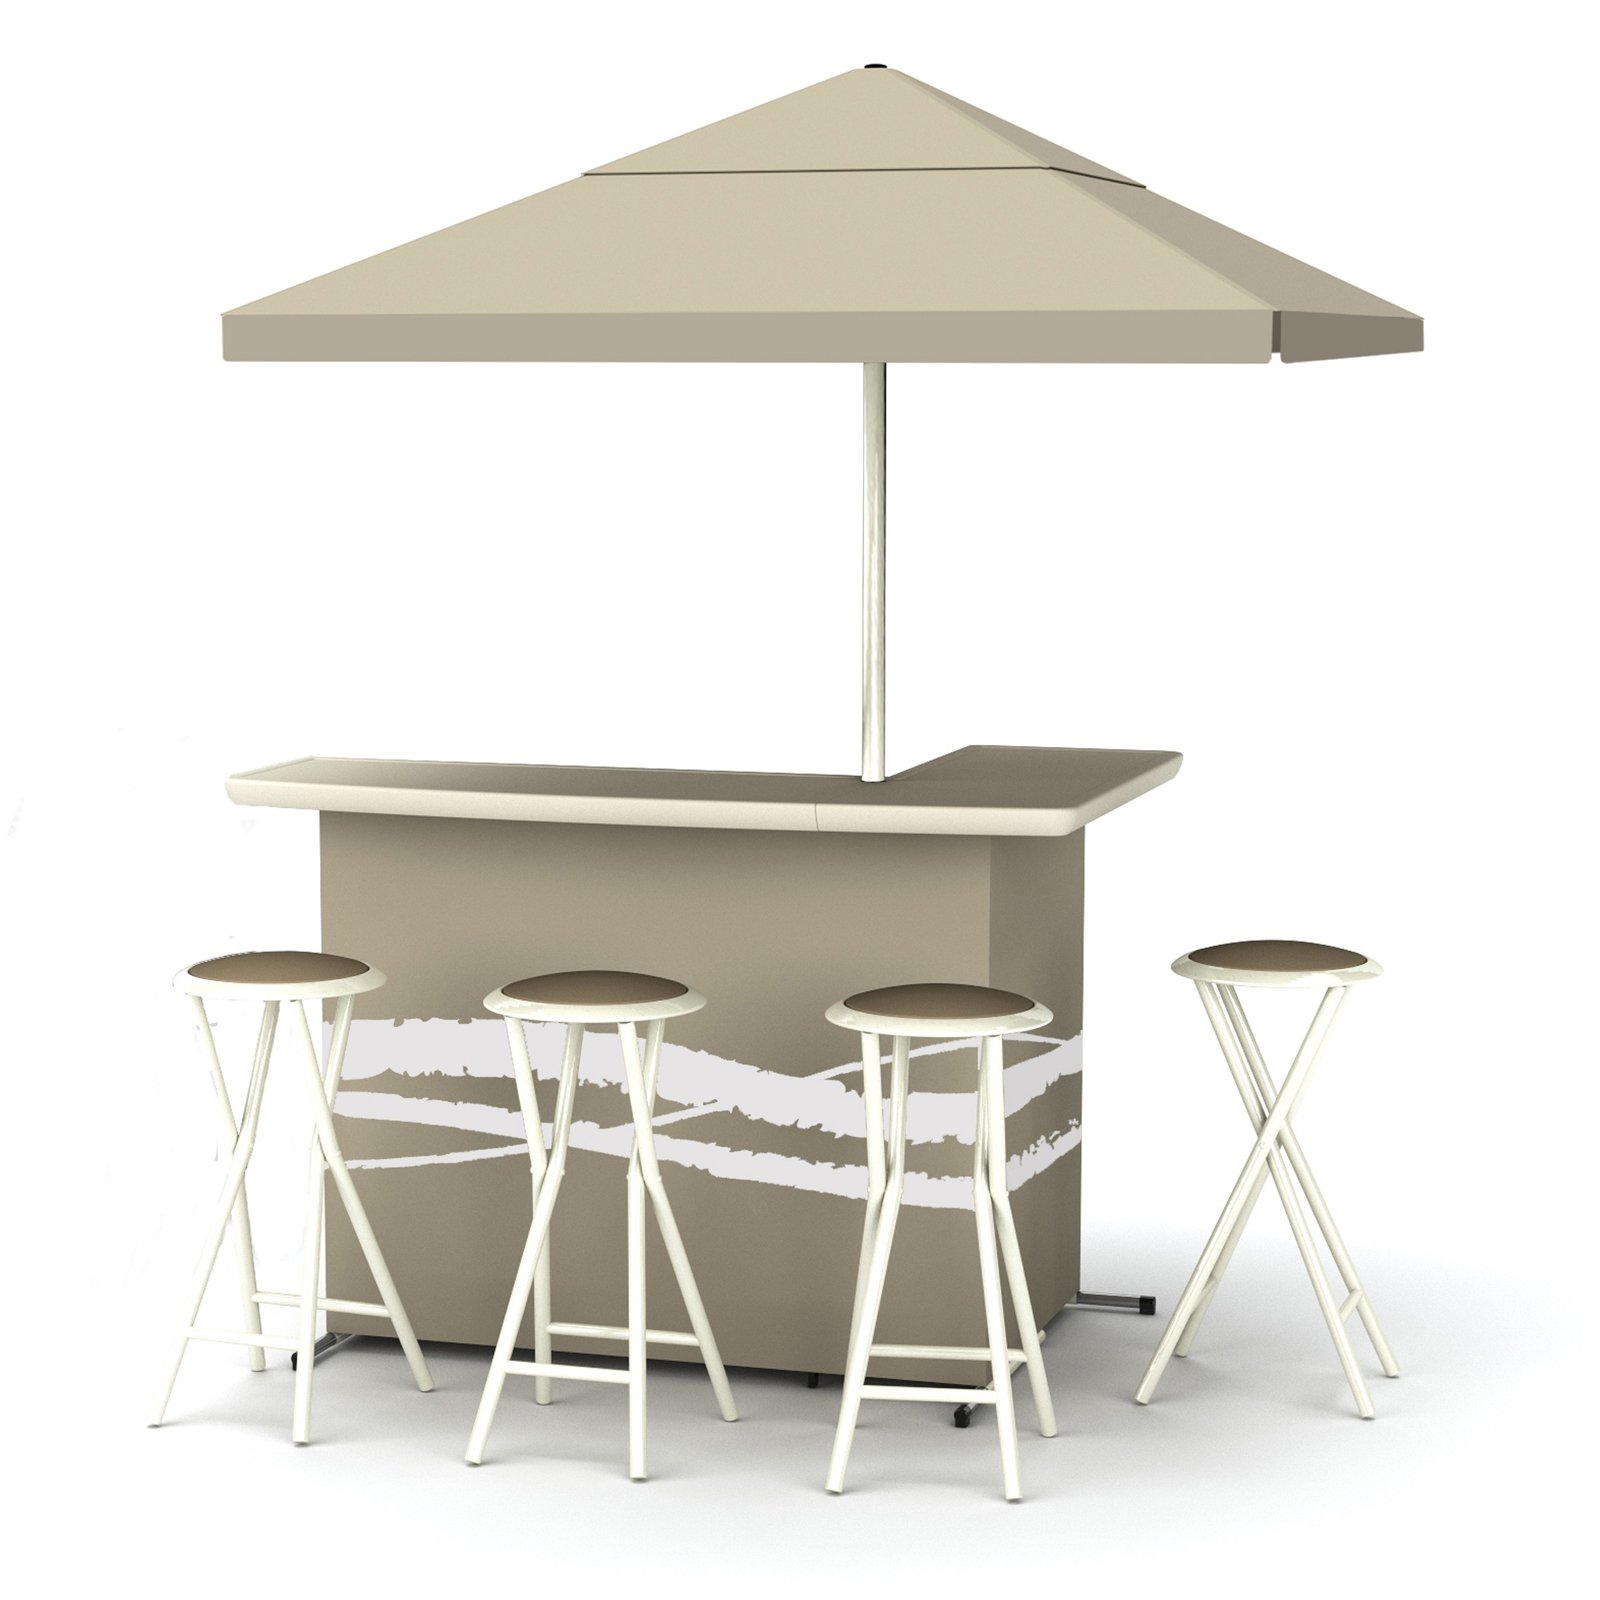 Best of Times Indoor/Outdoor Portable Bar with 4 Barstools